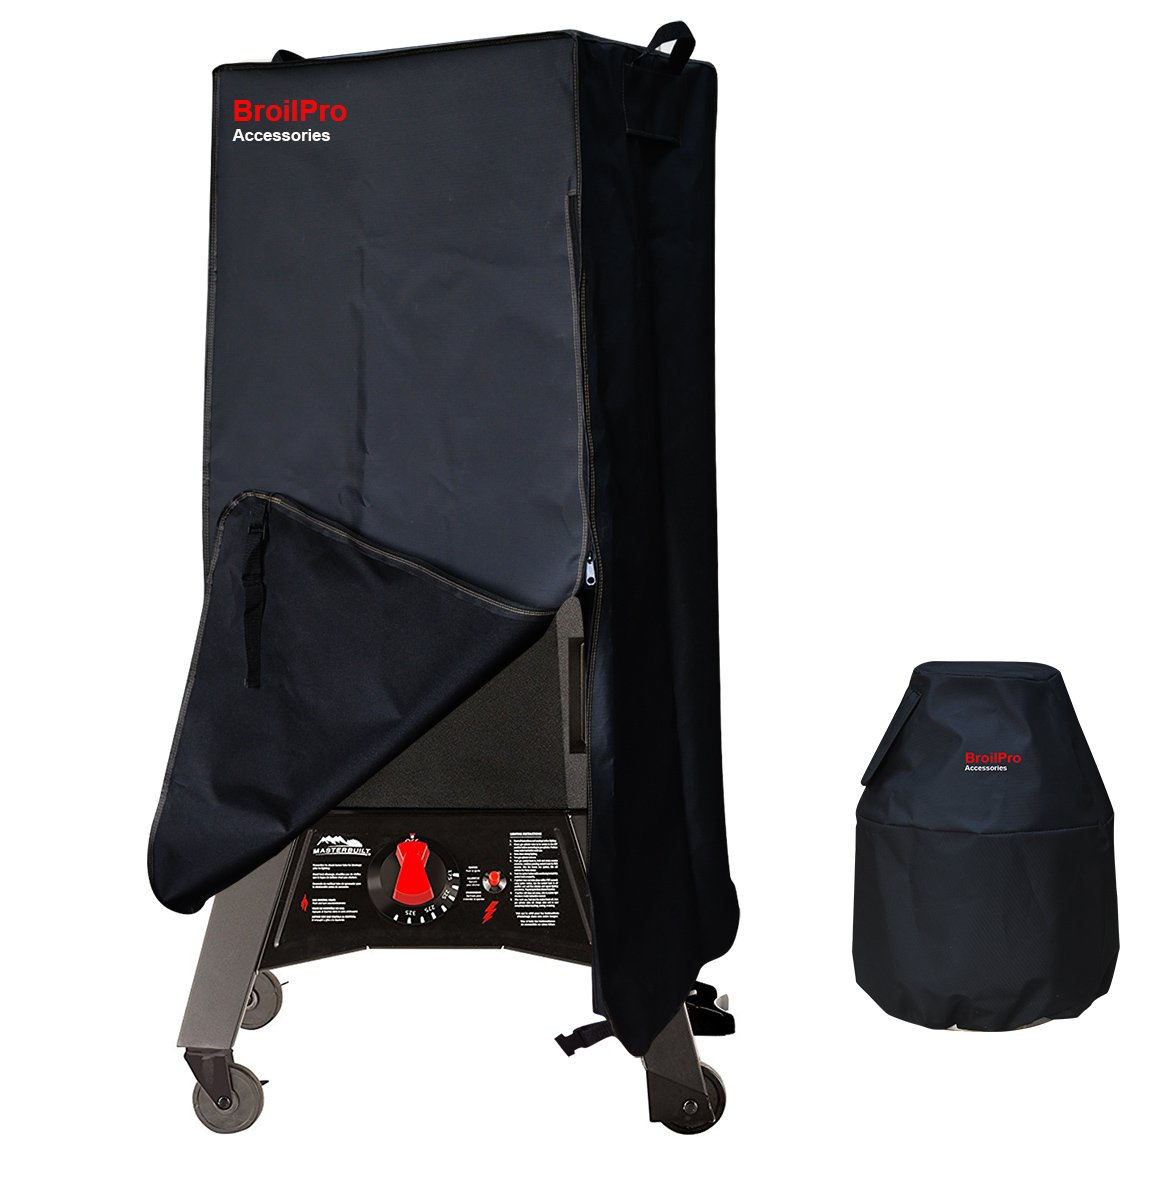 BroilPro Accessories Smoker Cover Fits Masterbuilt 20050716 Thermotemp Propane Smoker Including Tank Cover by BroilPro Accessories